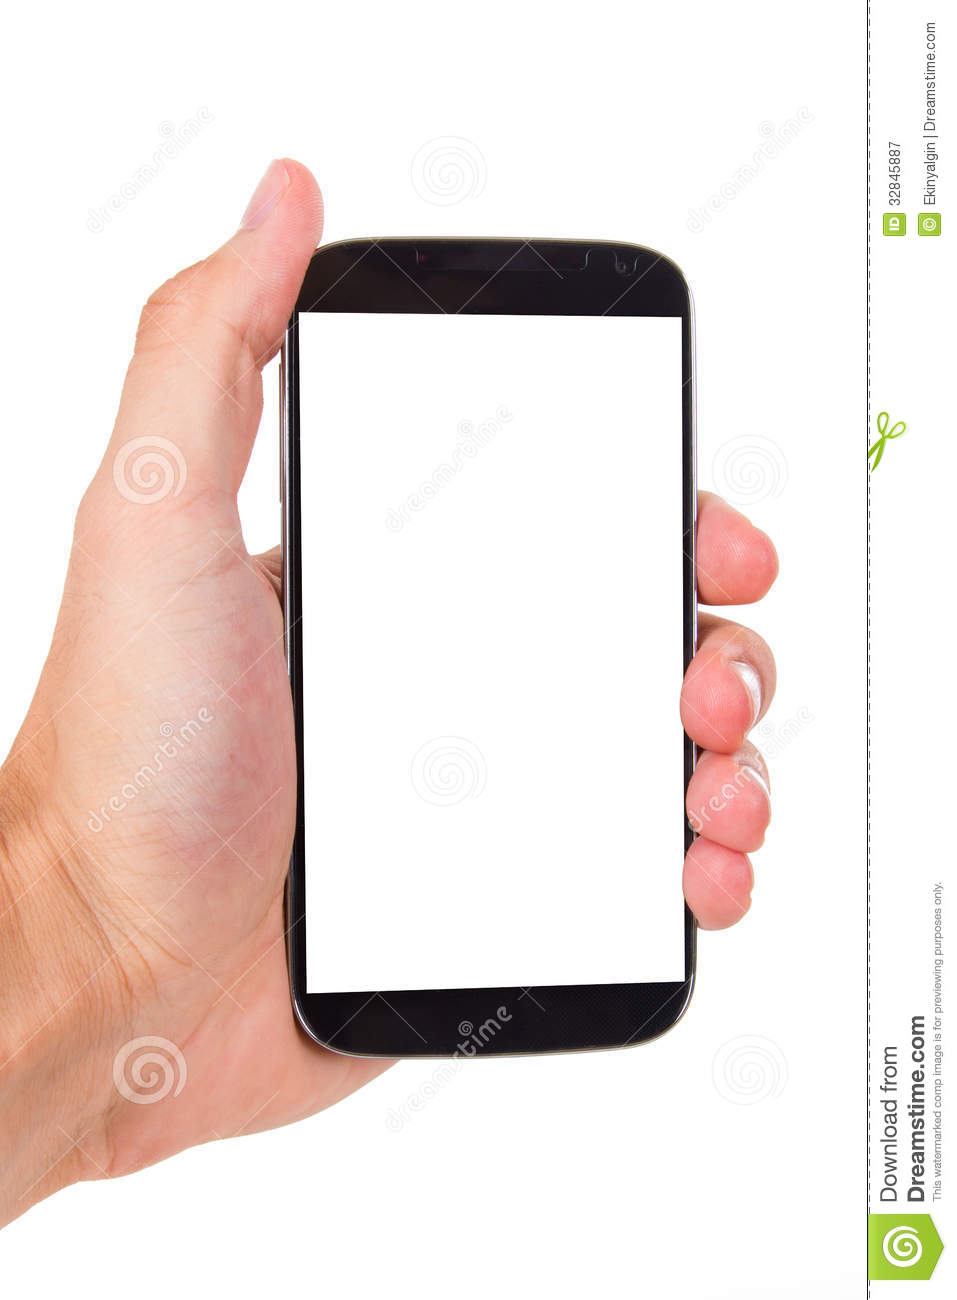 Mobile Phone With Blank Screen Royalty Free Stock Photography - Image ...